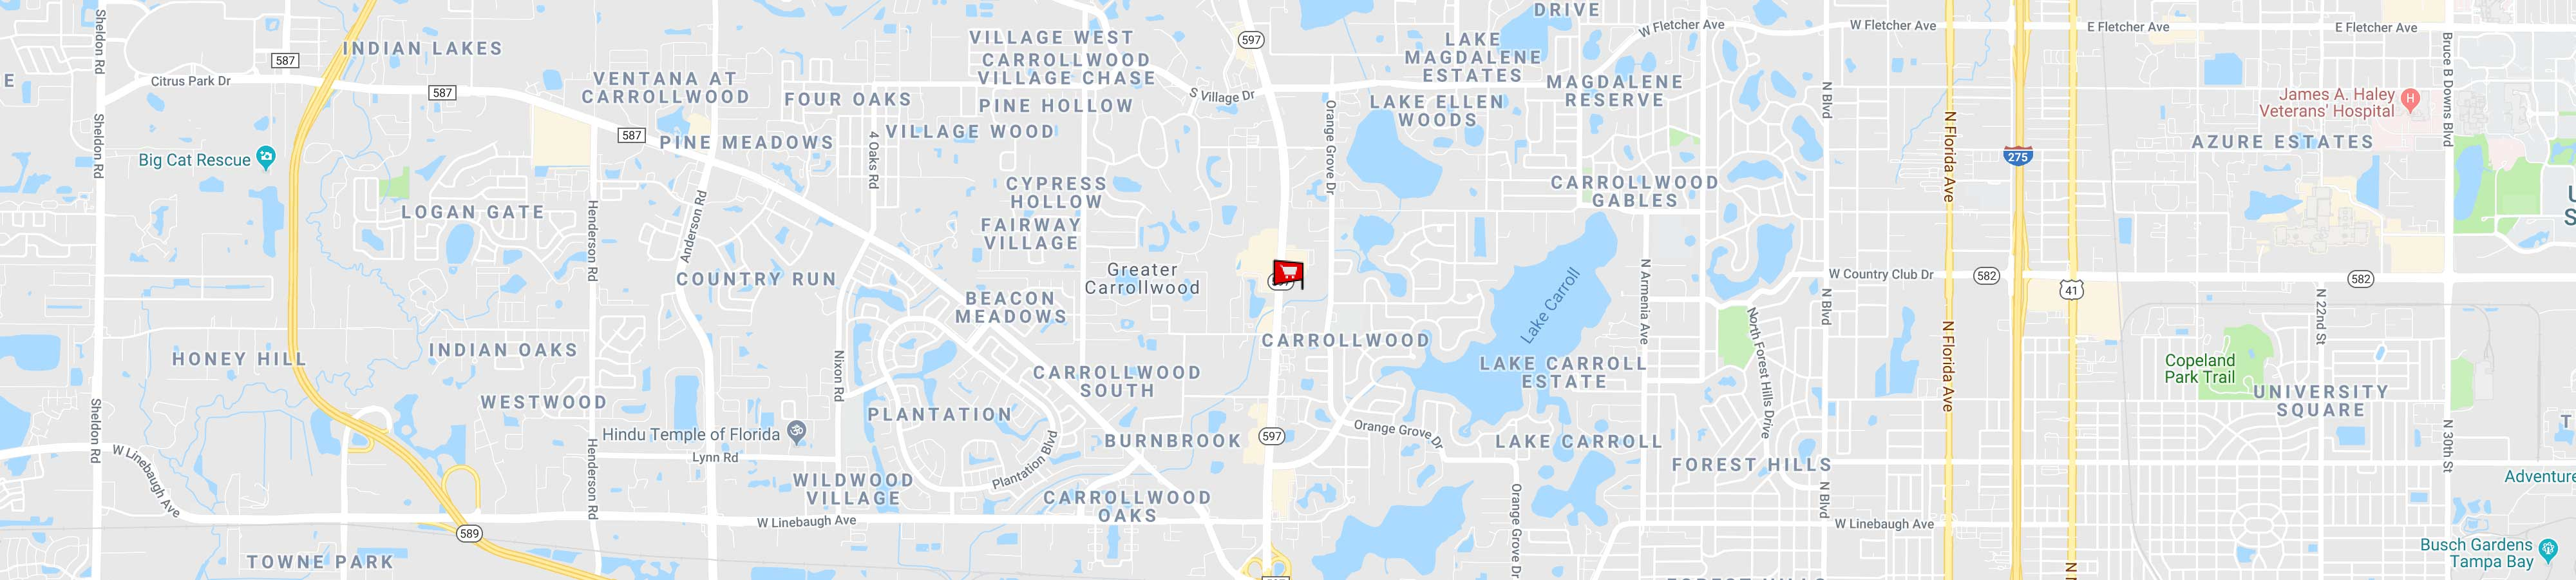 Carrollwood Store Map